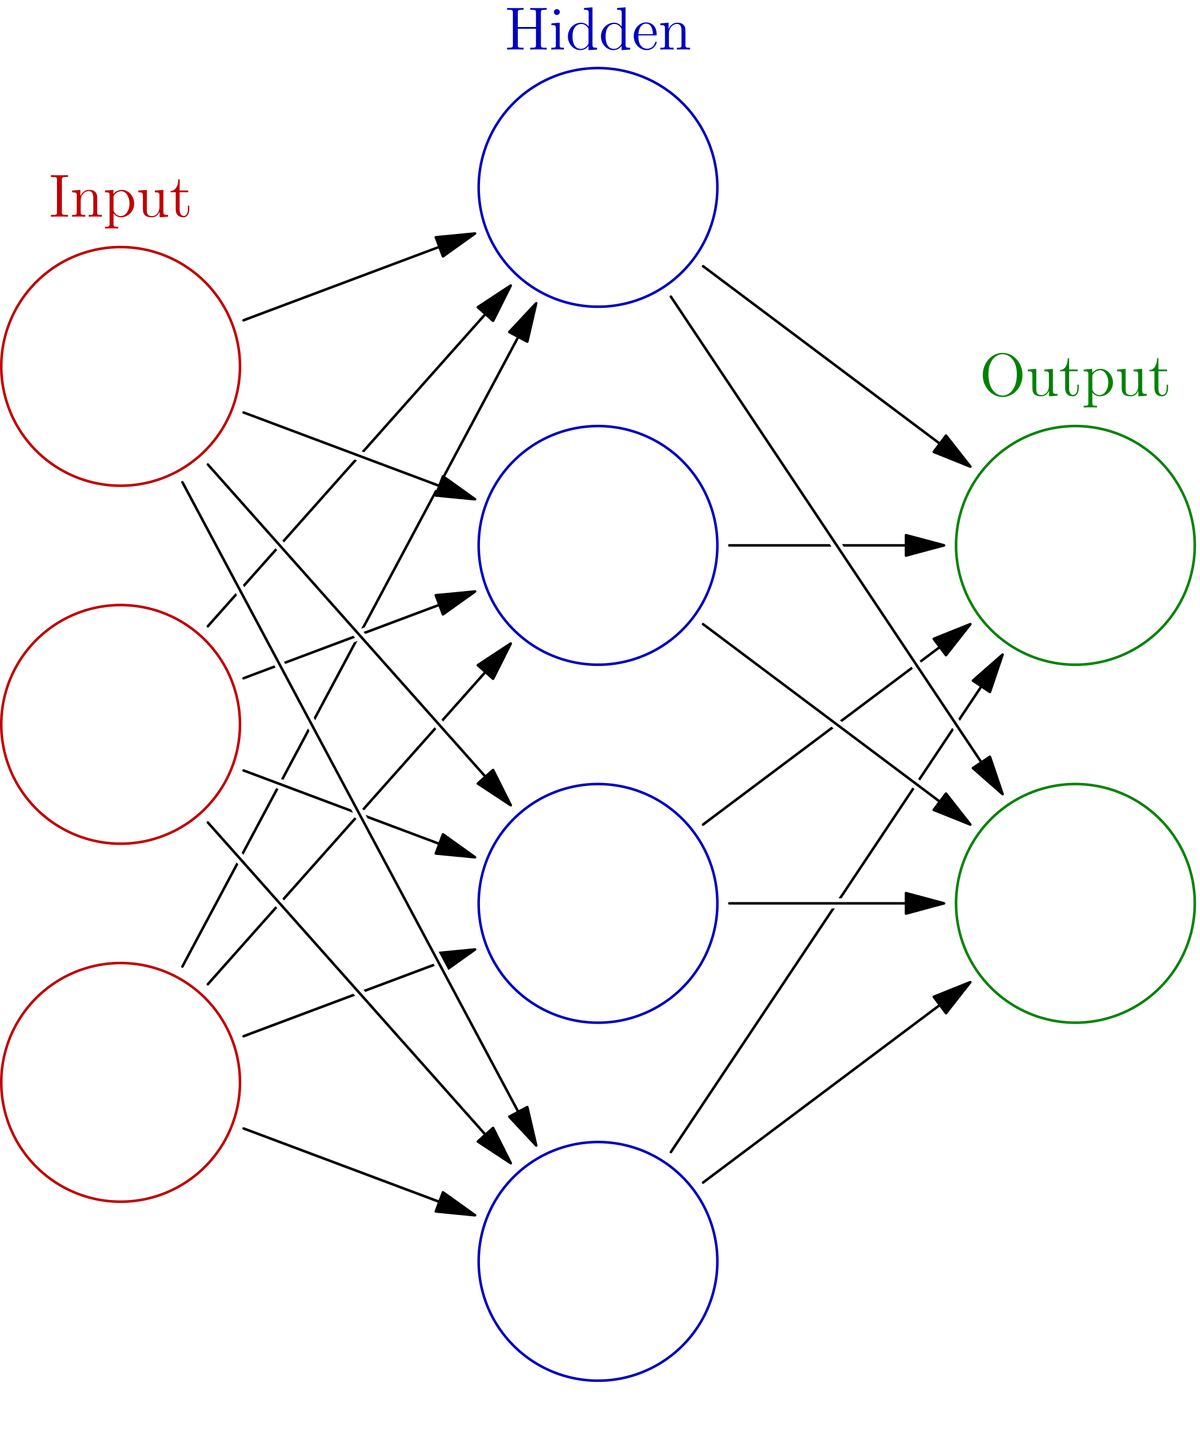 Artificial Feedforward Neural Network With Backpropagation From Scratch